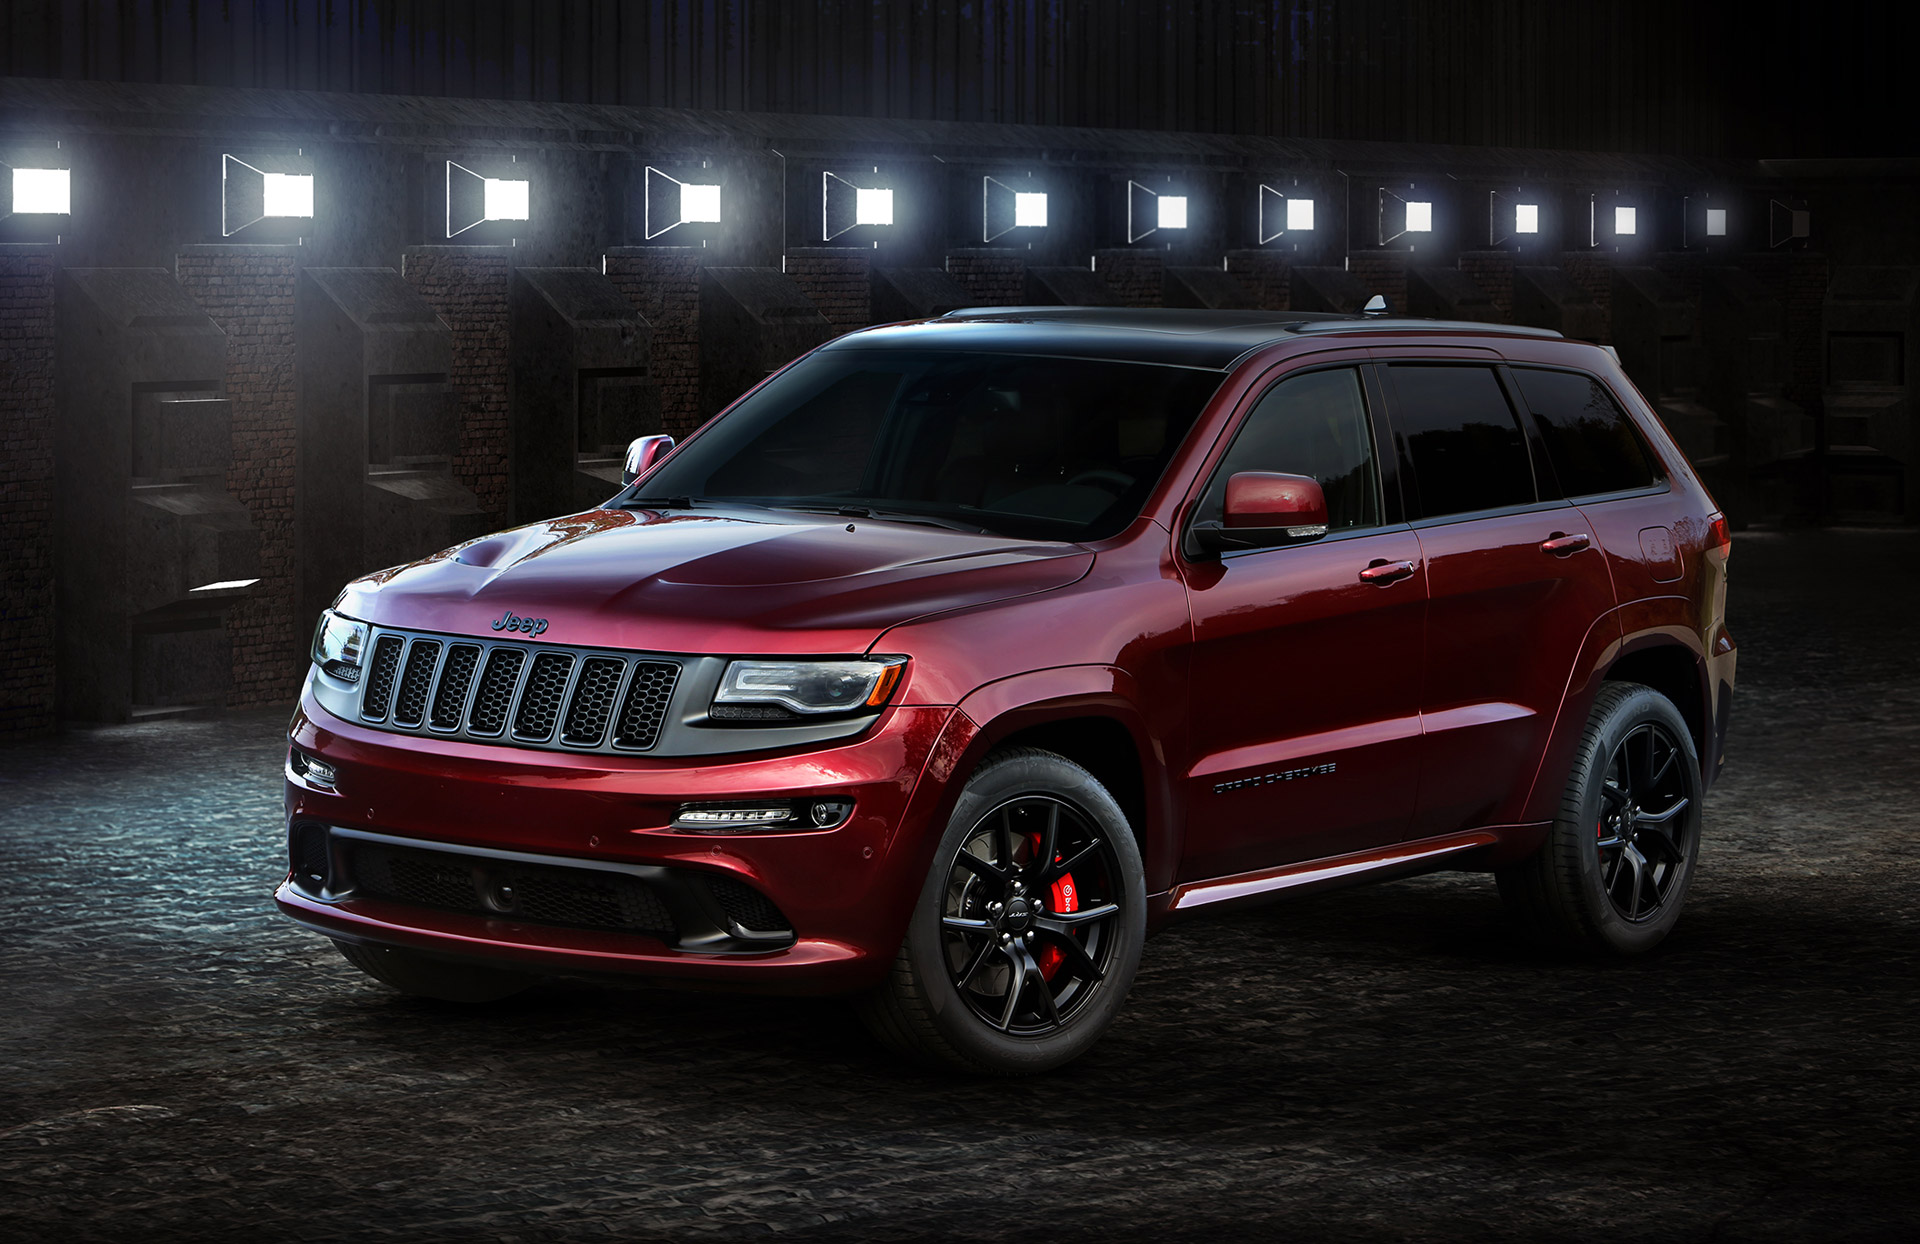 2016 Jeep Grand Cherokee Srt Wrangler Special Editions Head To L A Auto Show